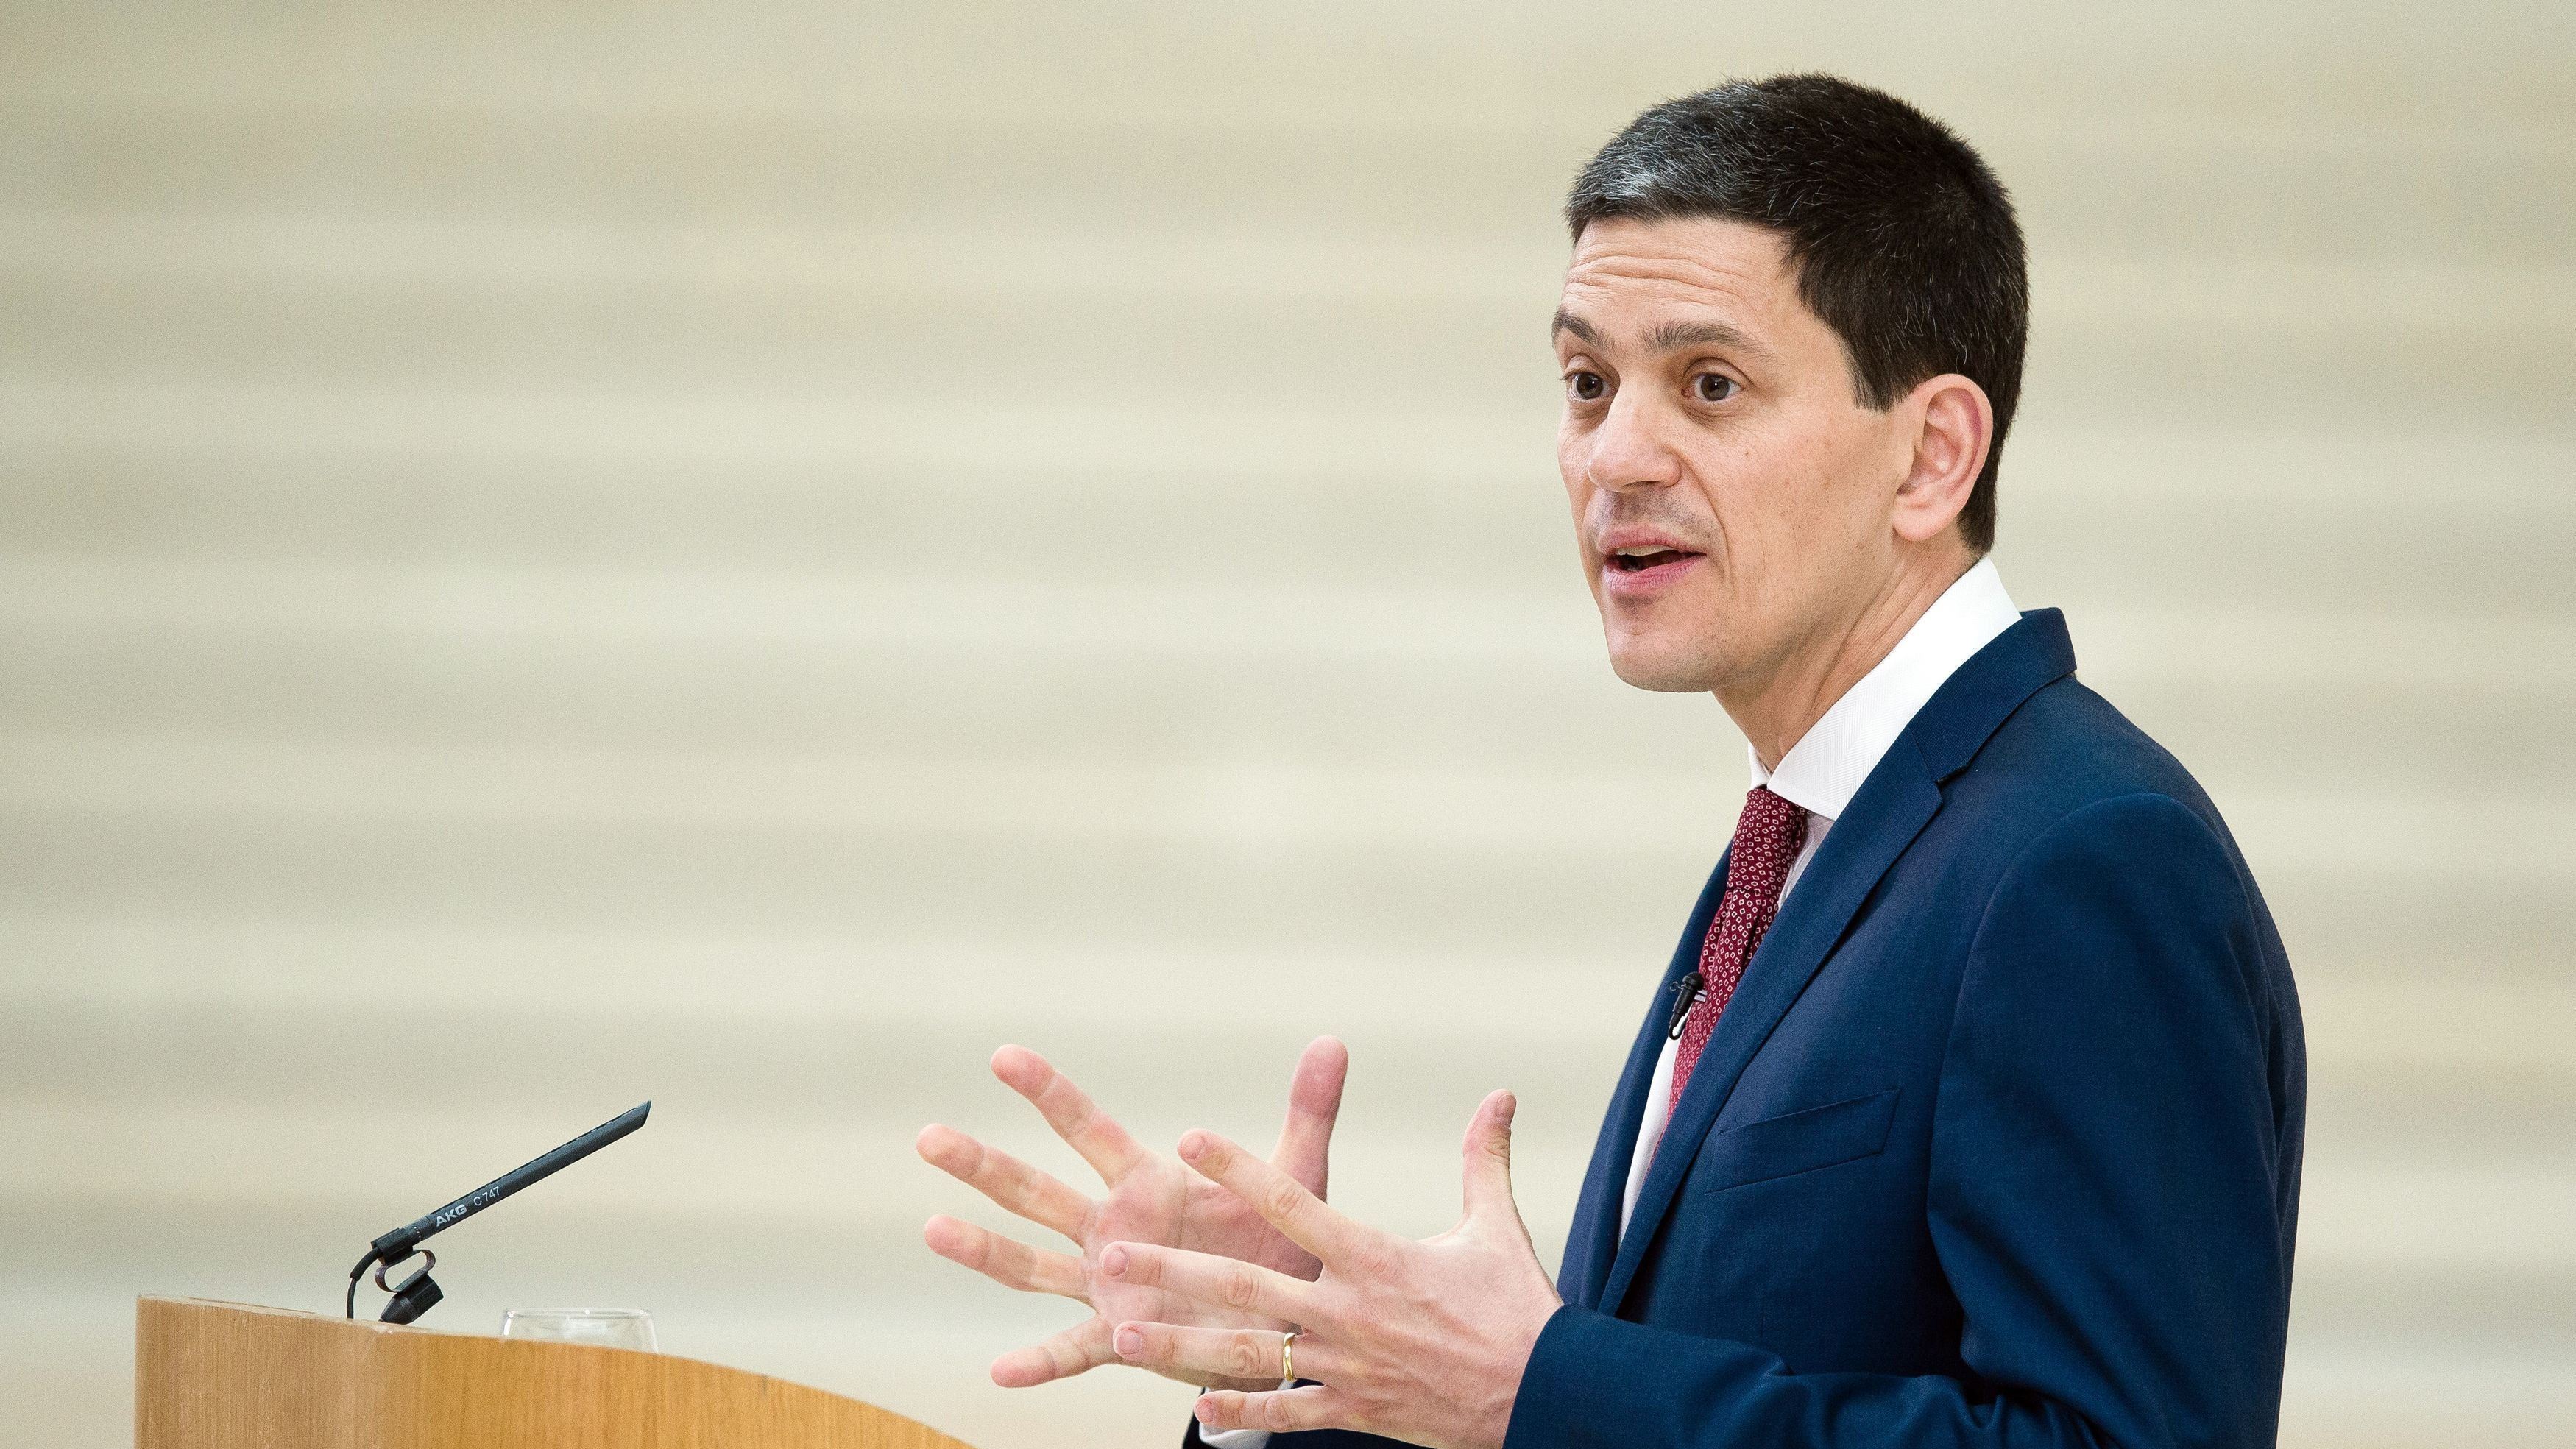 United Kingdom needs Brexit 'safe harbour' - David Miliband